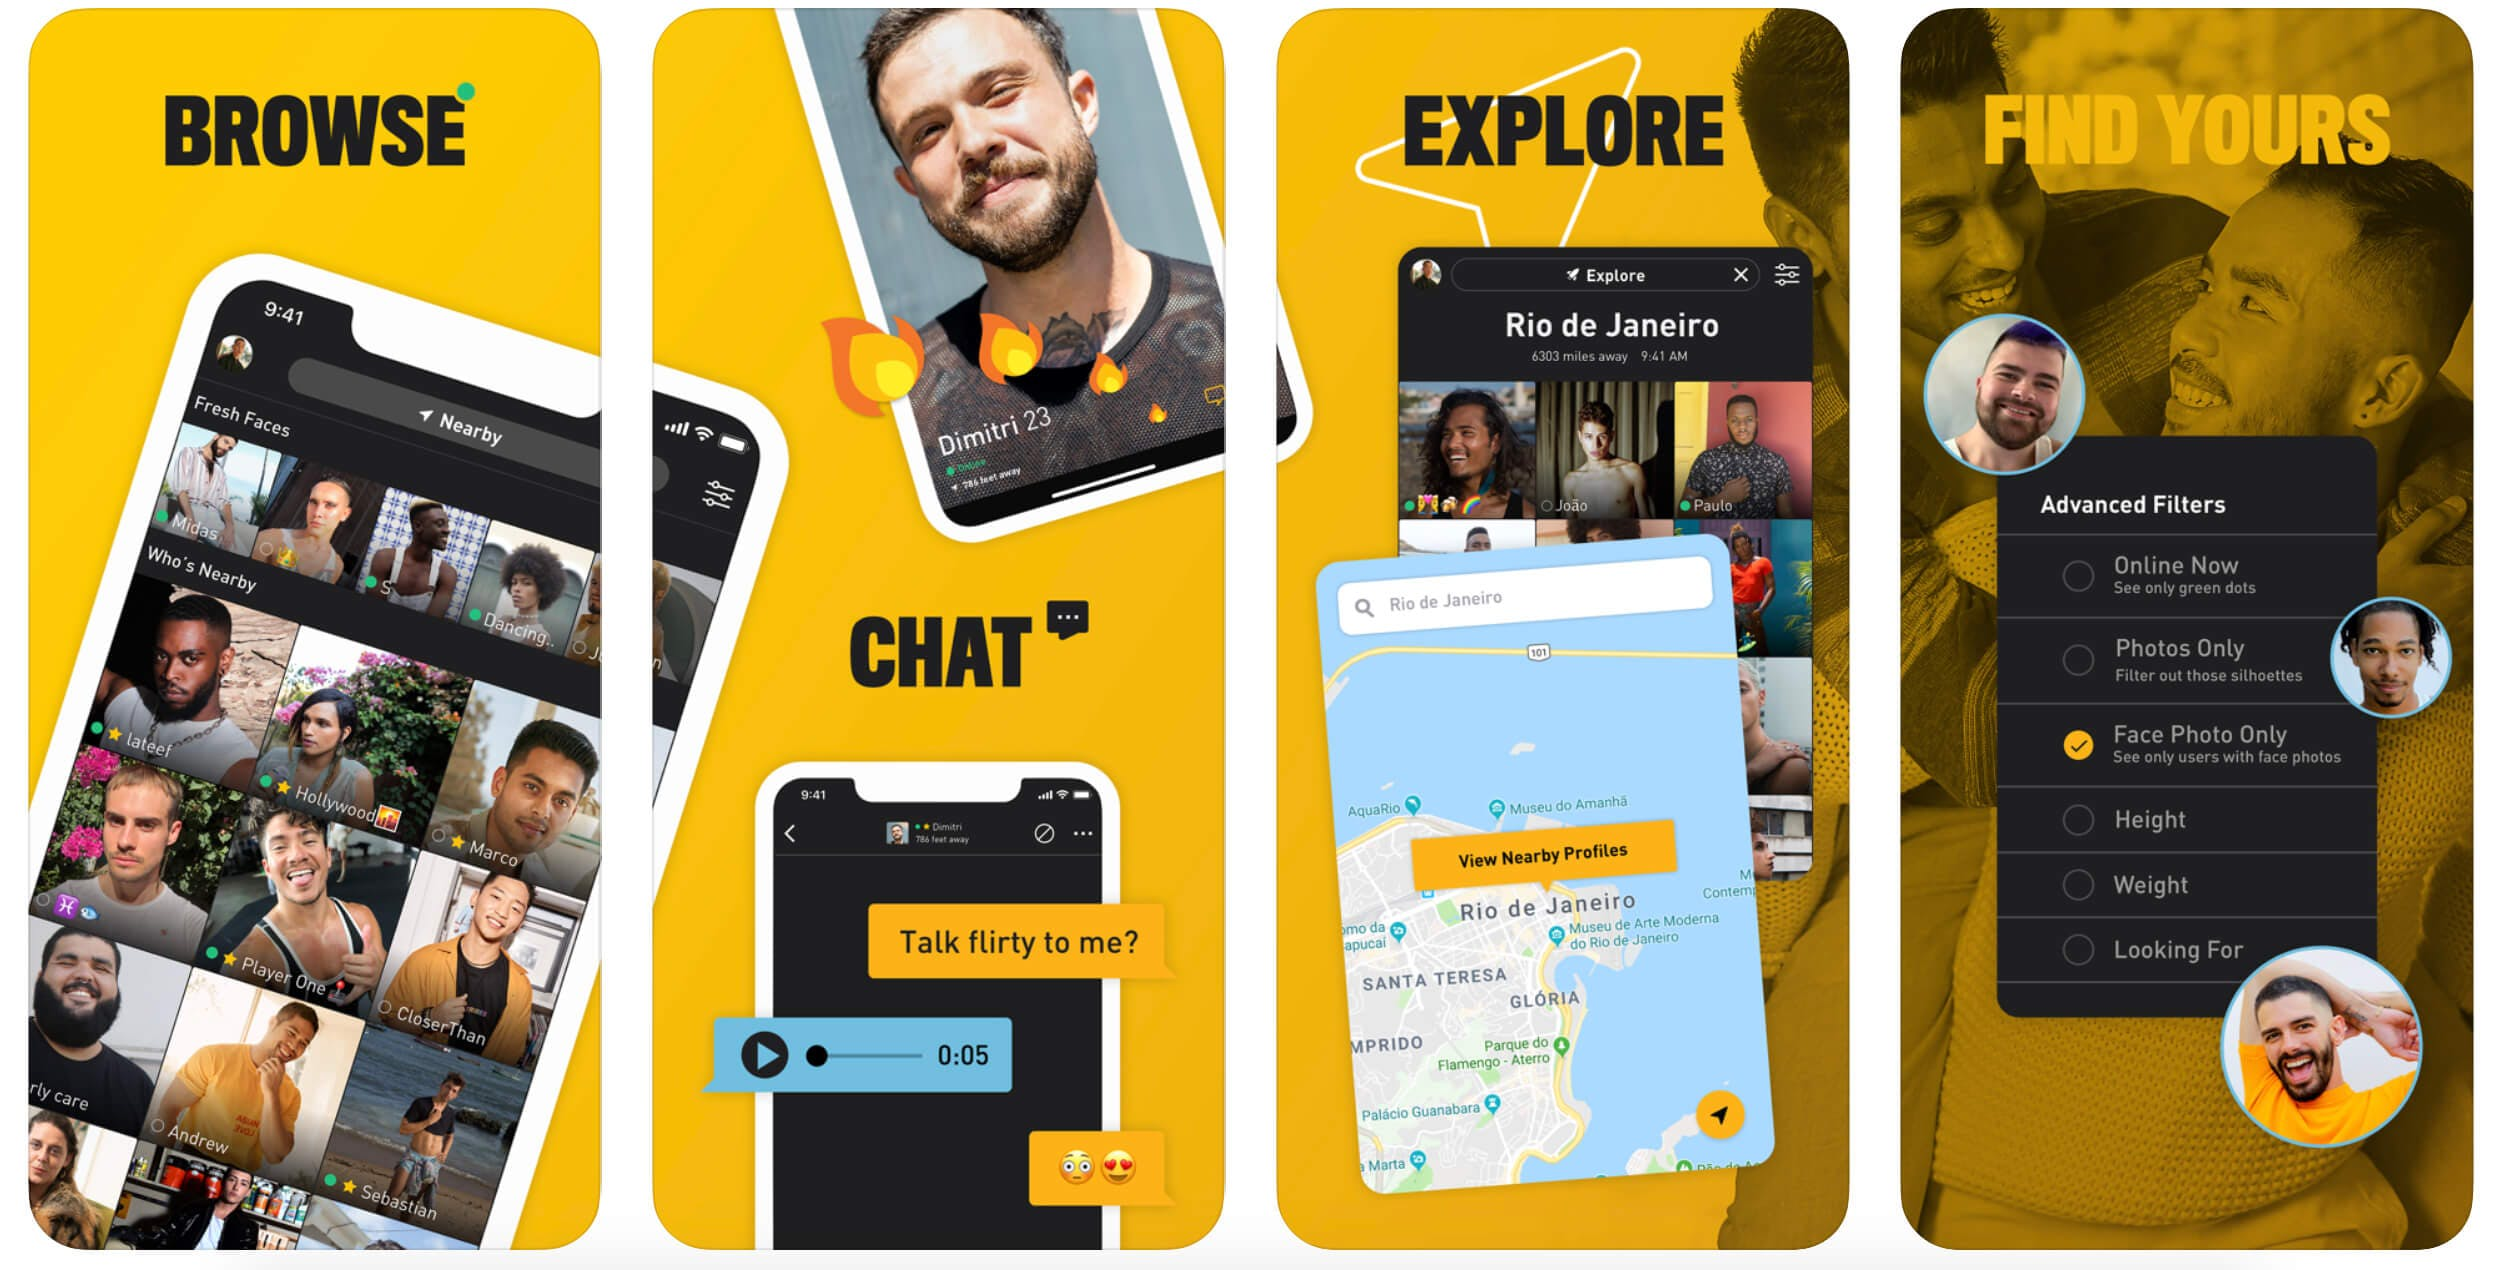 Screenshot of Grindr profile interface and chat features.